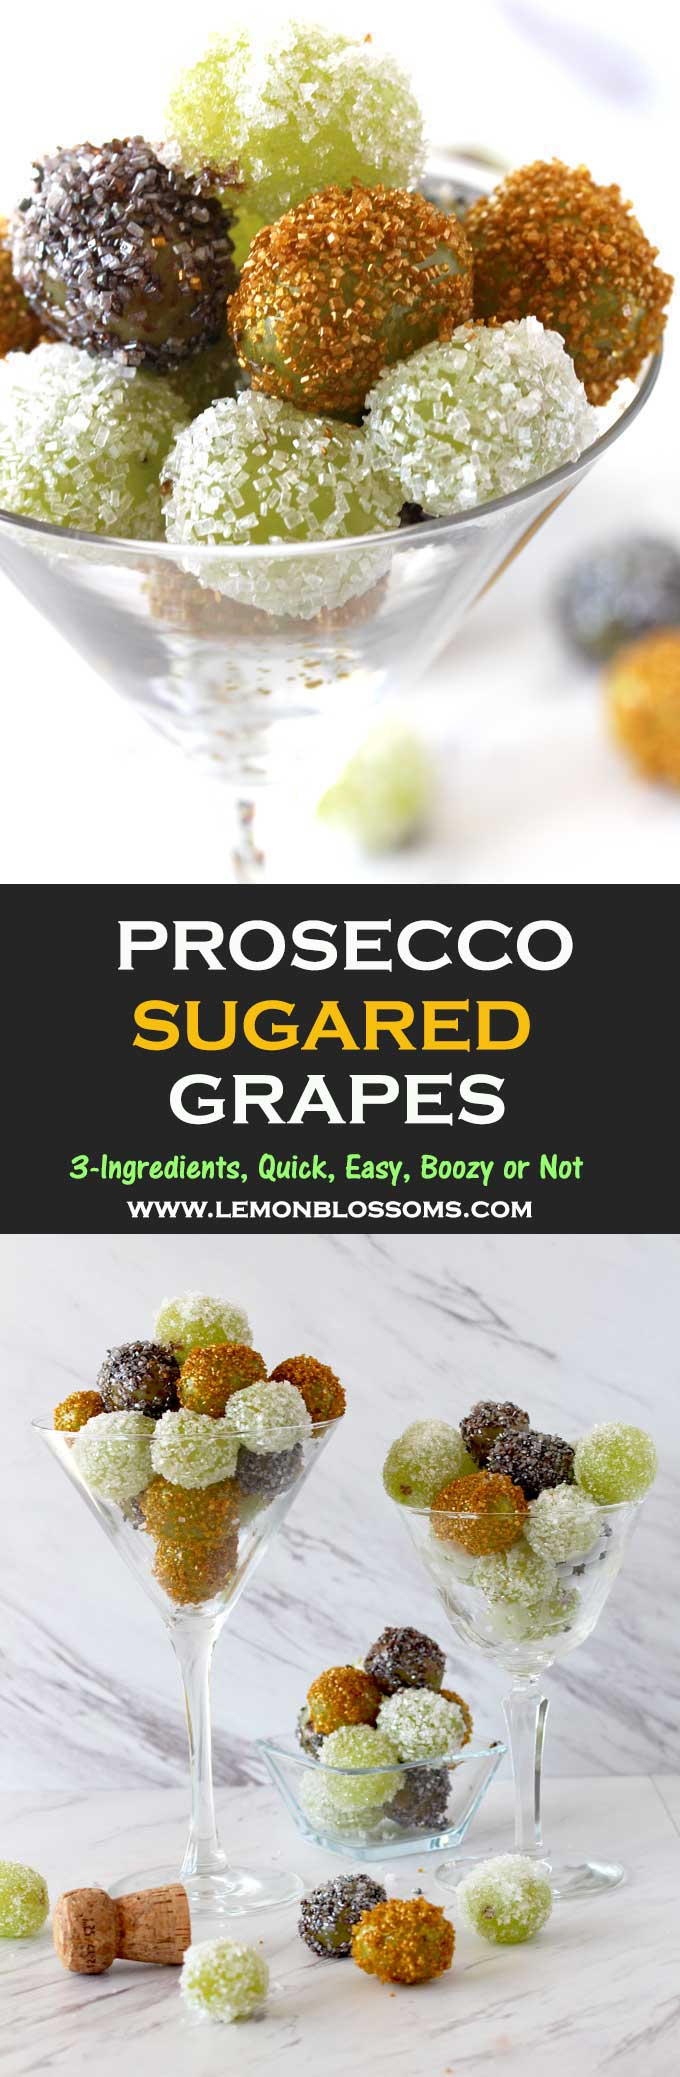 These Prosecco Sugared Grapes have only 3 ingredients and are super easy to make. Sweet, crunchy, boozy and addicting! They are the perfect lucky treat for New Year's or any other day of the year! Kid friendly version instructions provided. #grapes #prosecco #champagne #sugaredgrapes #candiedgrapes #newyearseve #partyfoods #proseccograpes #appetizer #dessert